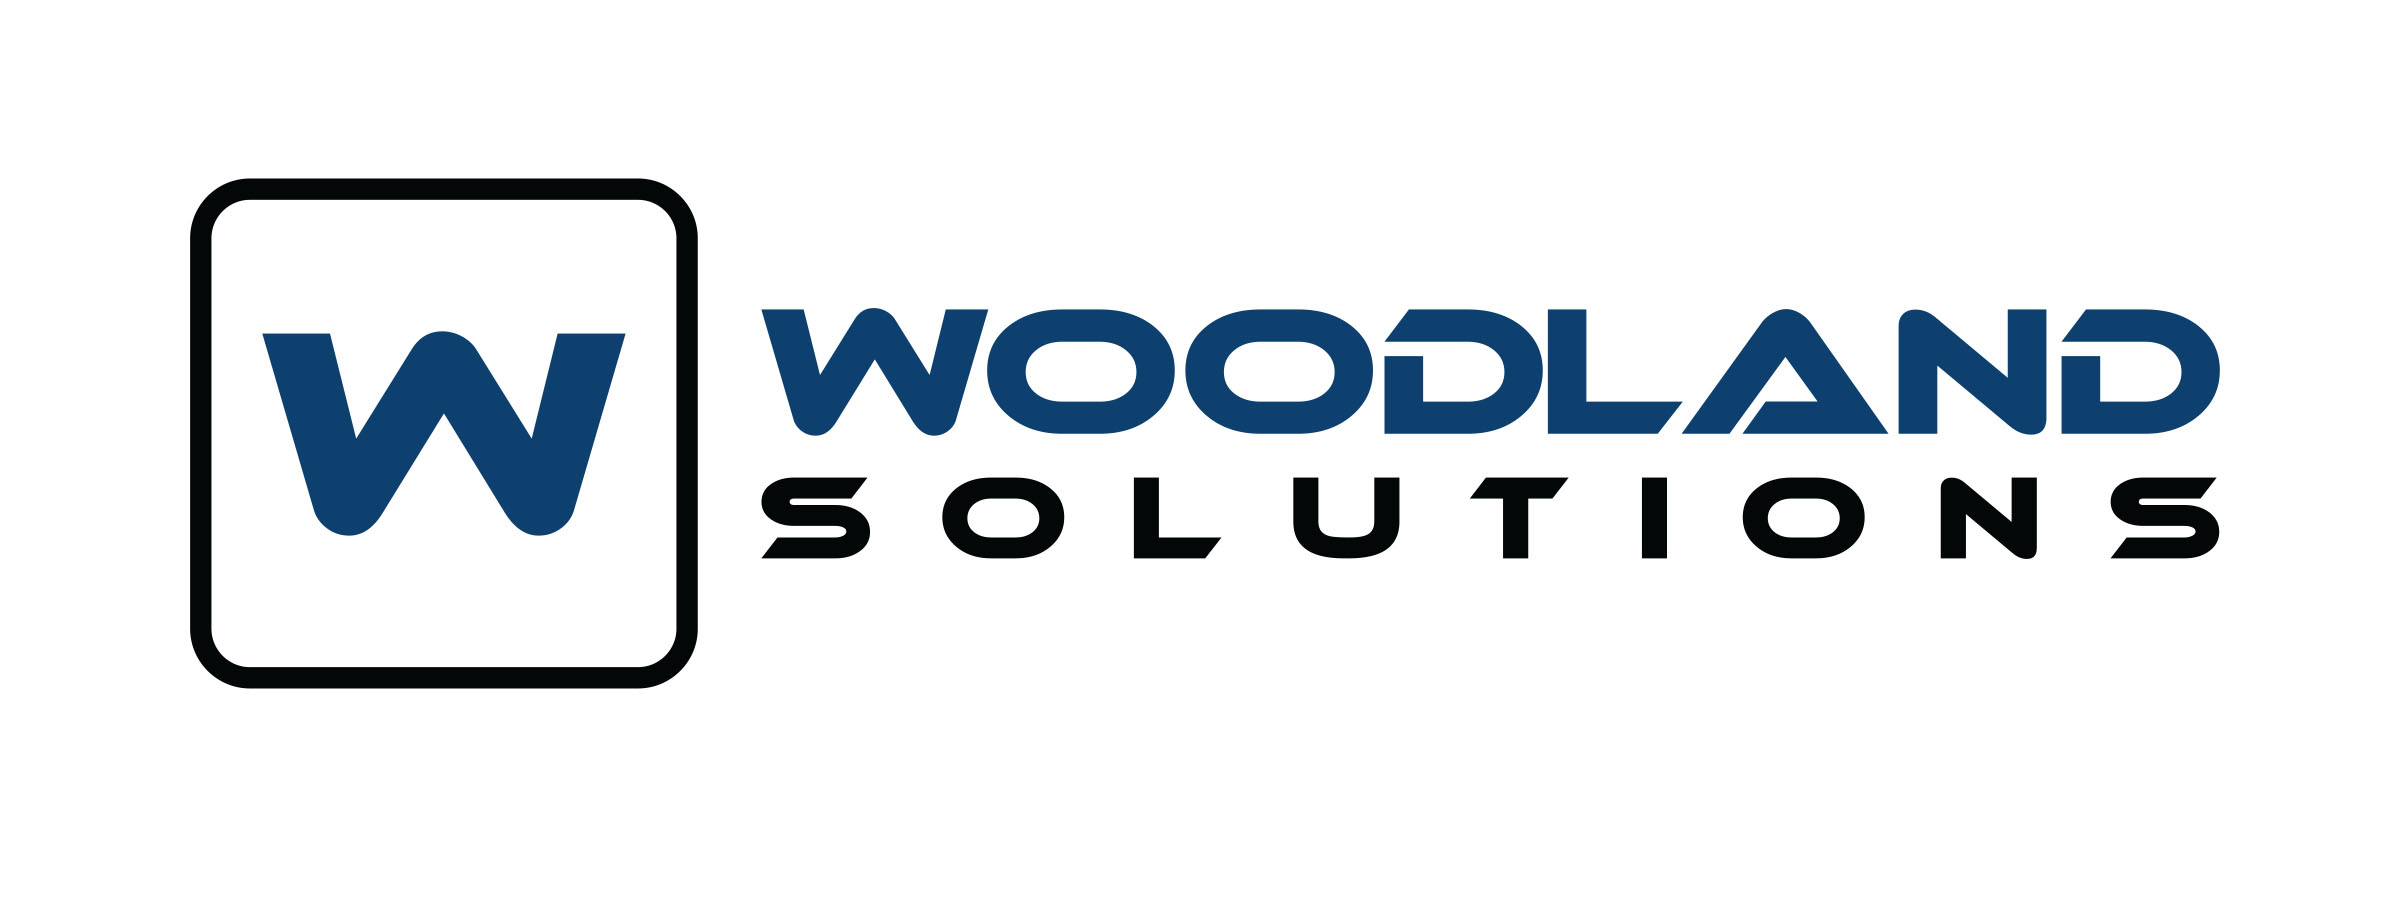 Woodland solutions